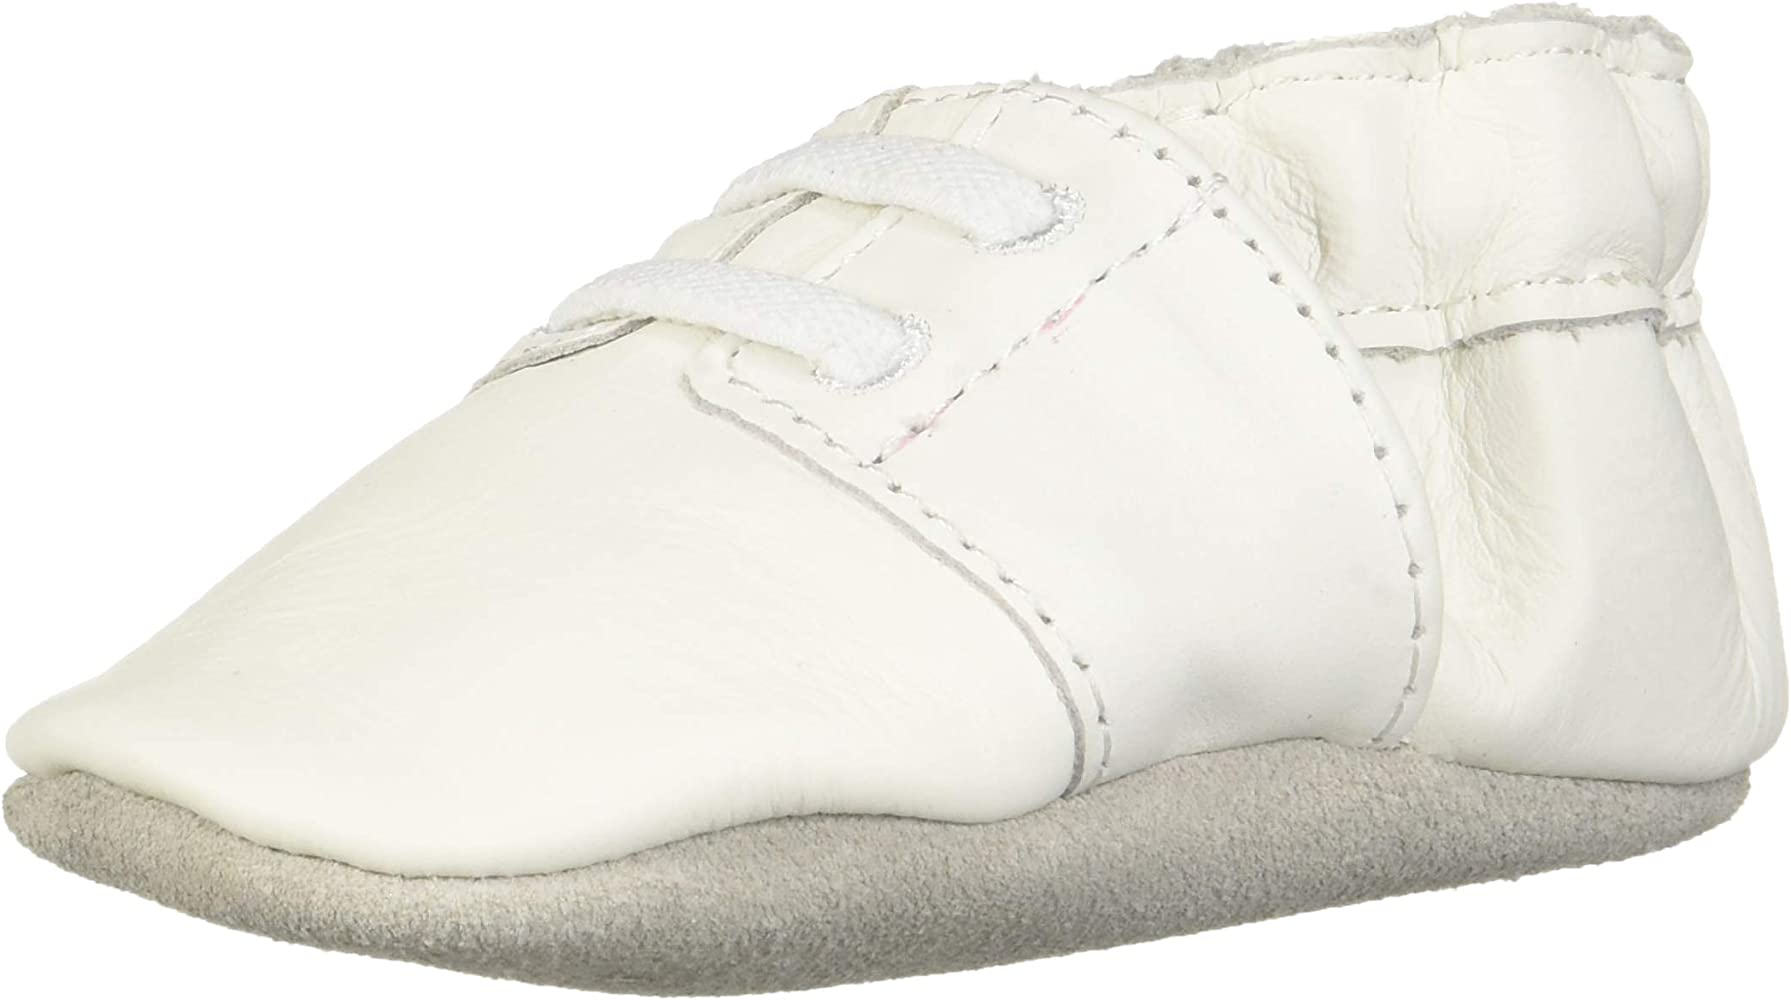 Robeez Special Occasion Soft Sole Slip